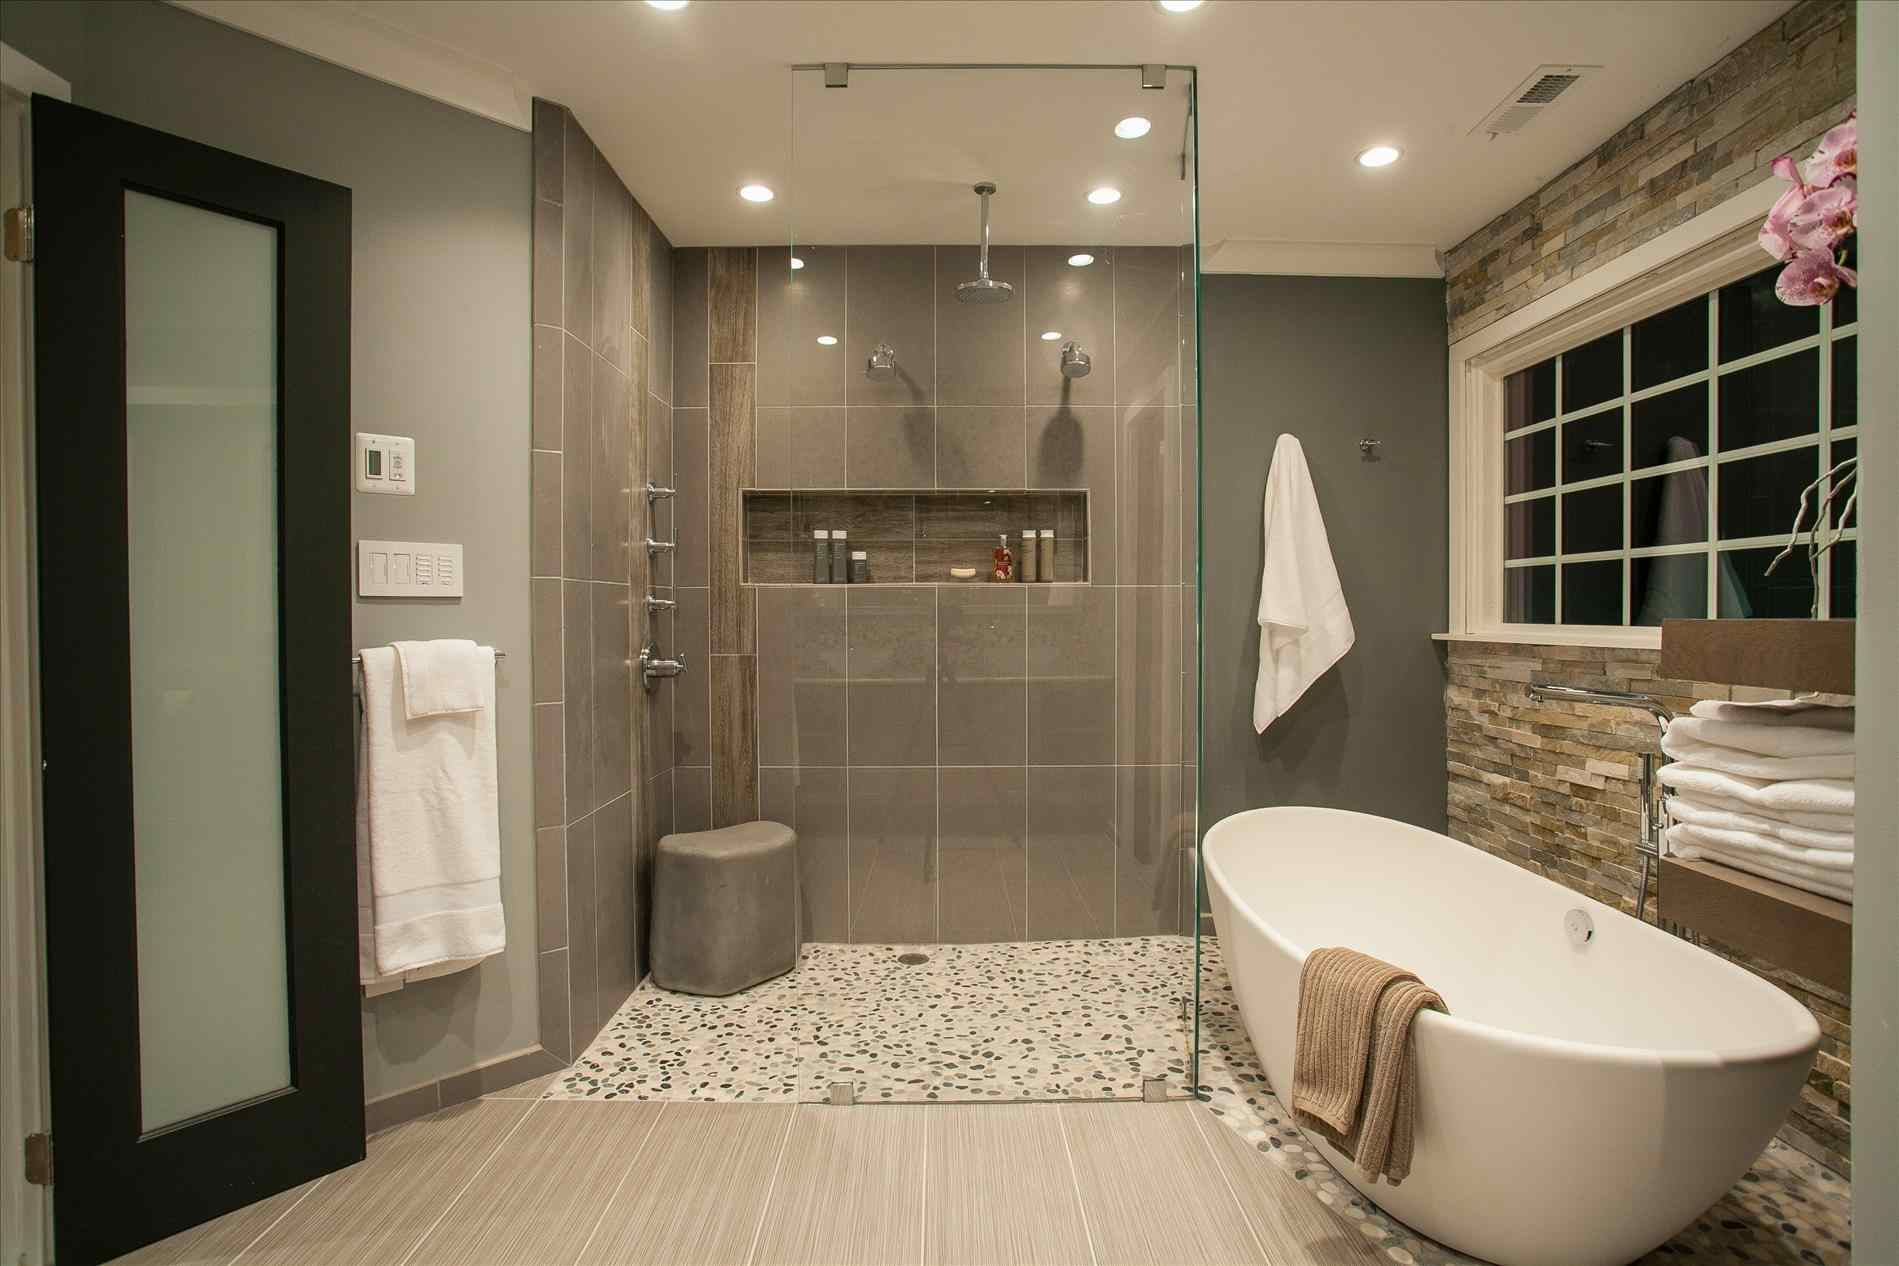 spa bathroom ideas for small bathrooms photo - 5